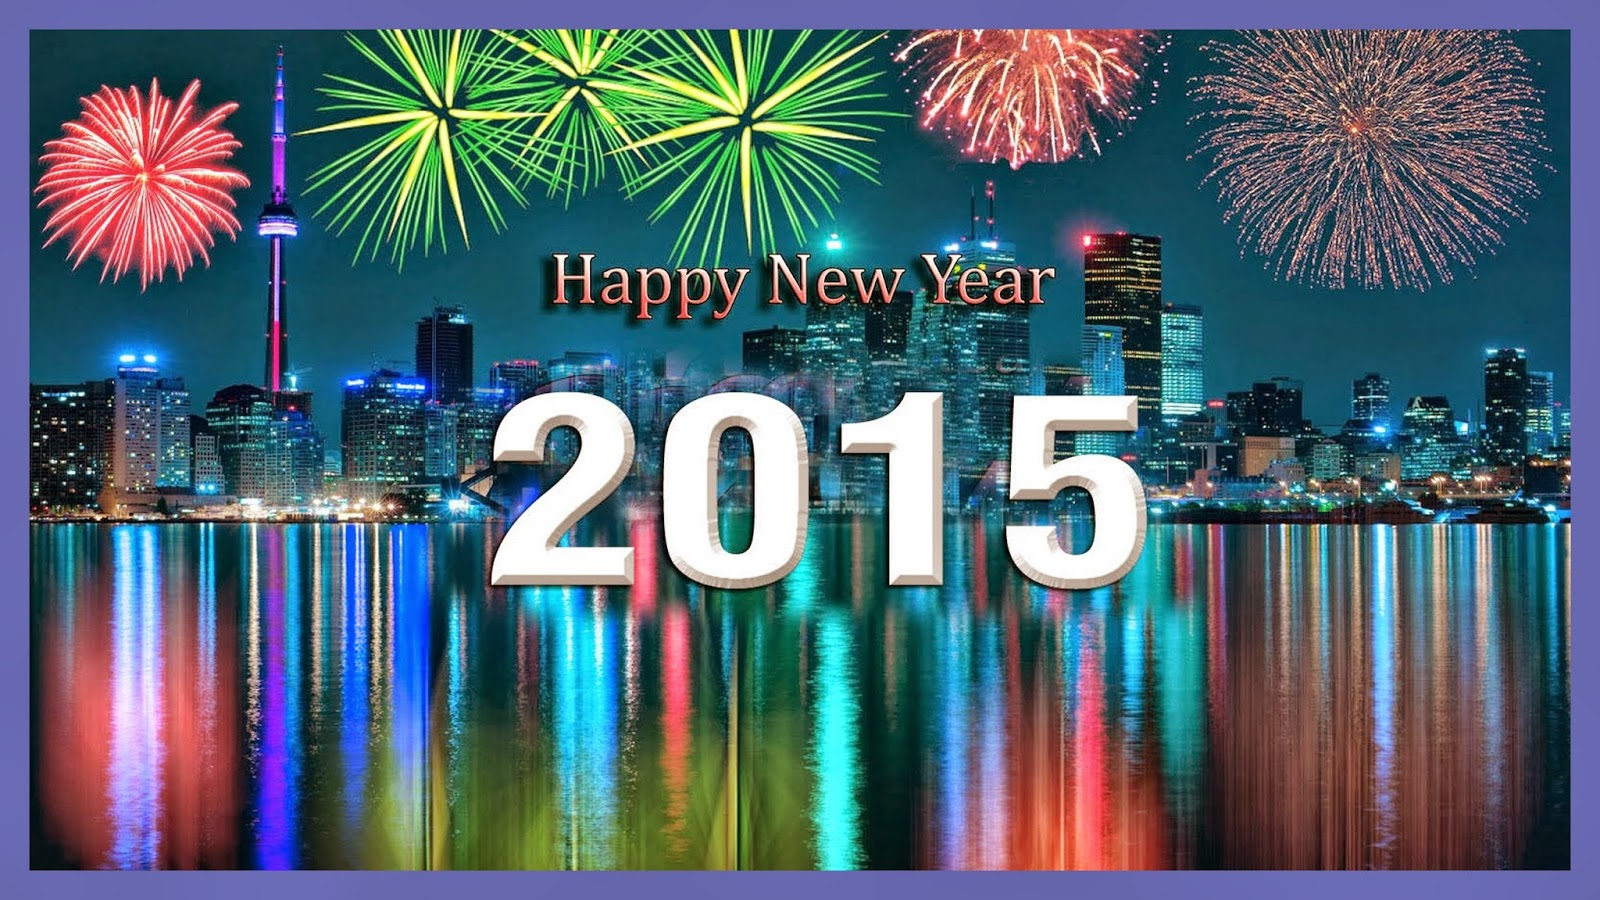 Re Train Your Brain To Happiness Happy New Year 2015